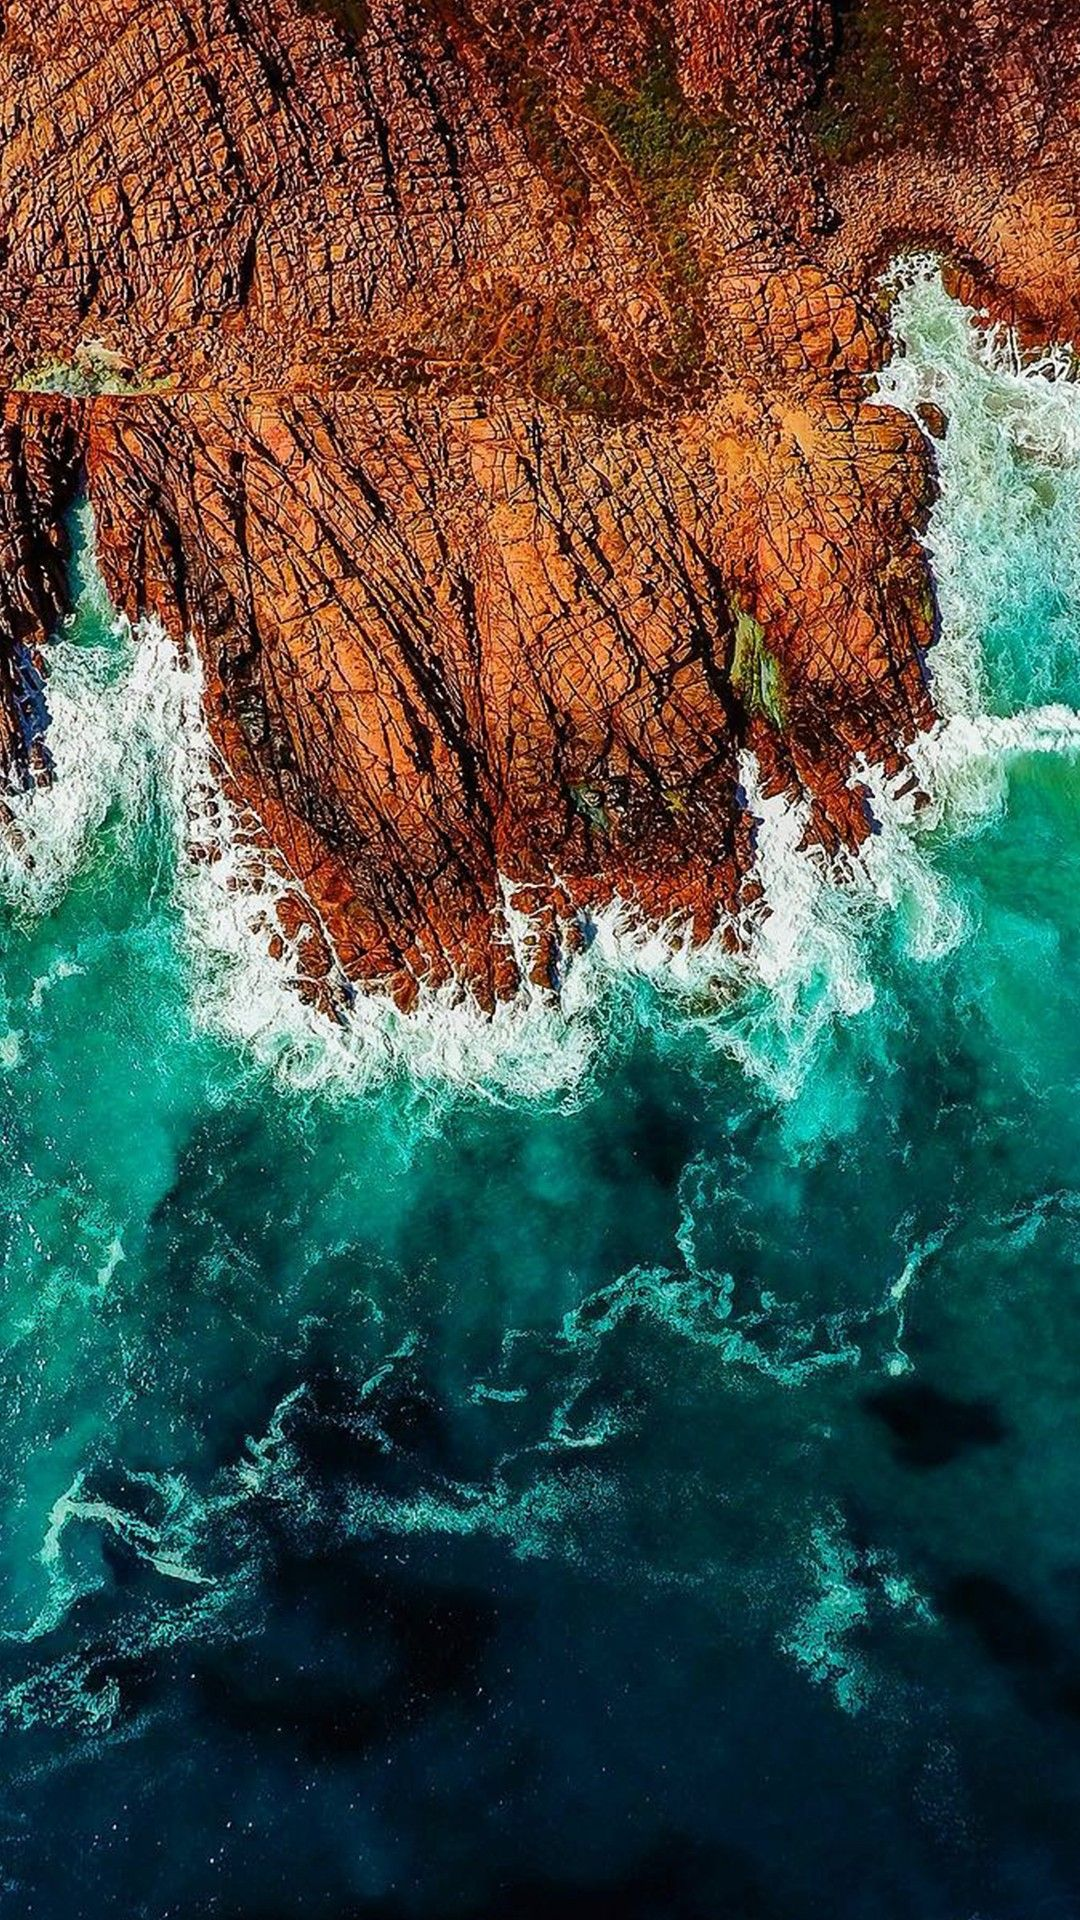 Iphone Wallpaper Ocean Waves